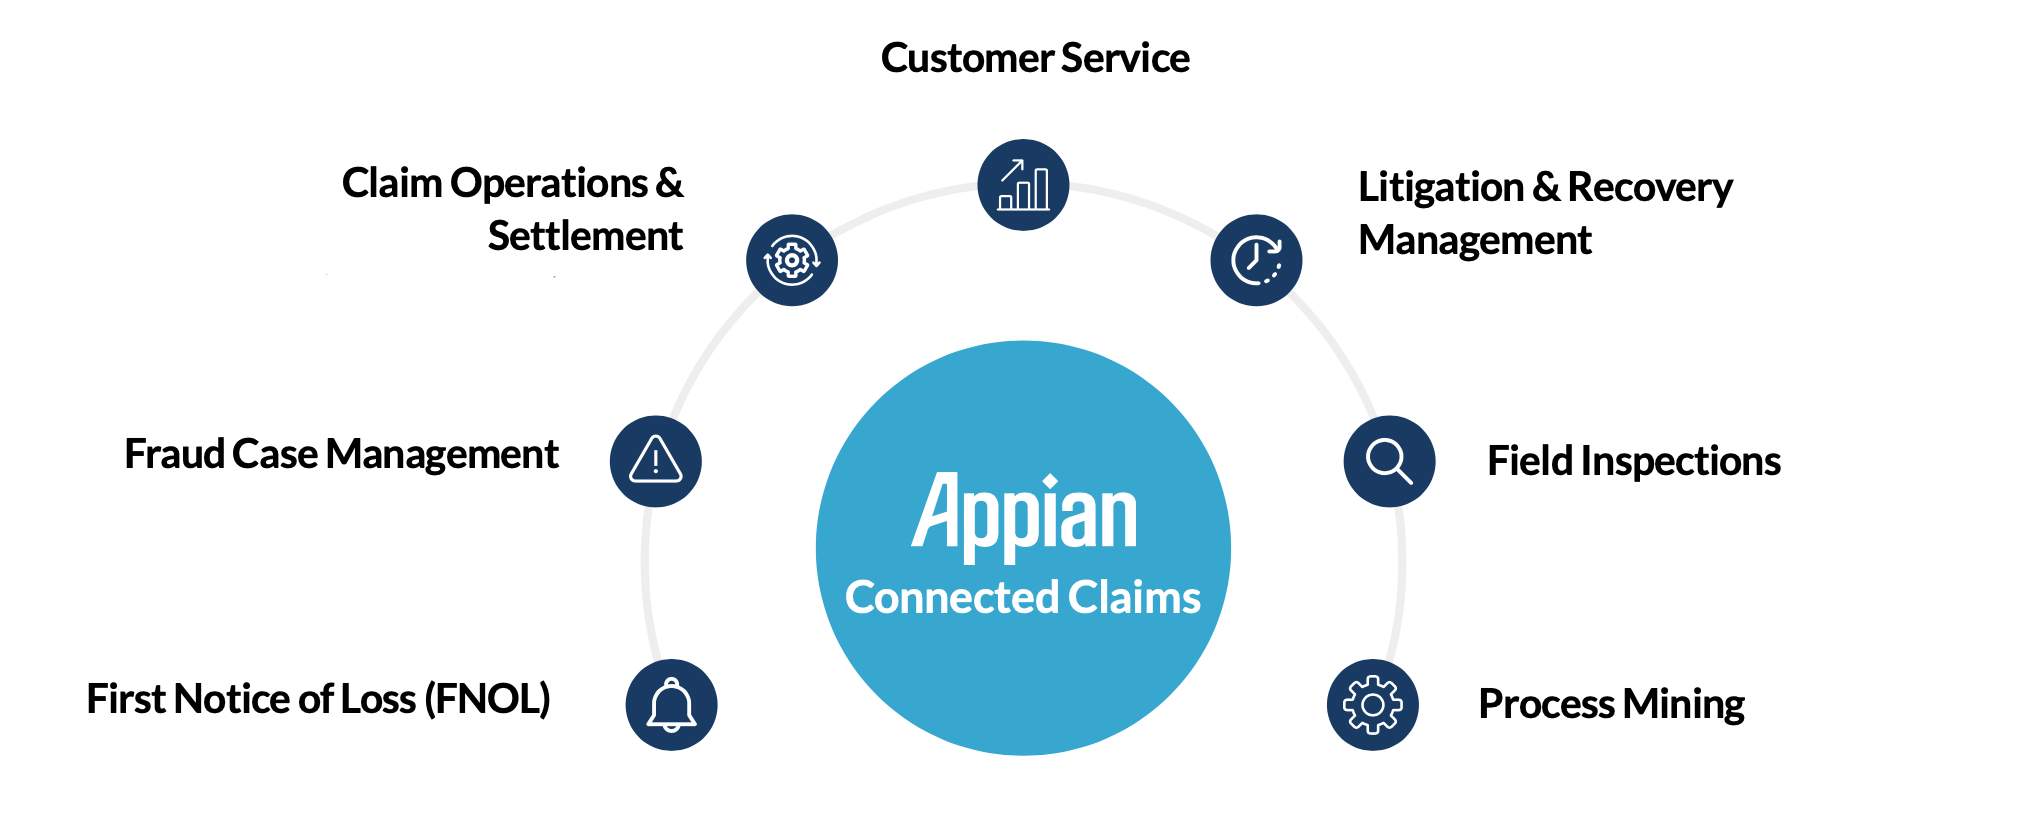 Appian Connected Claims